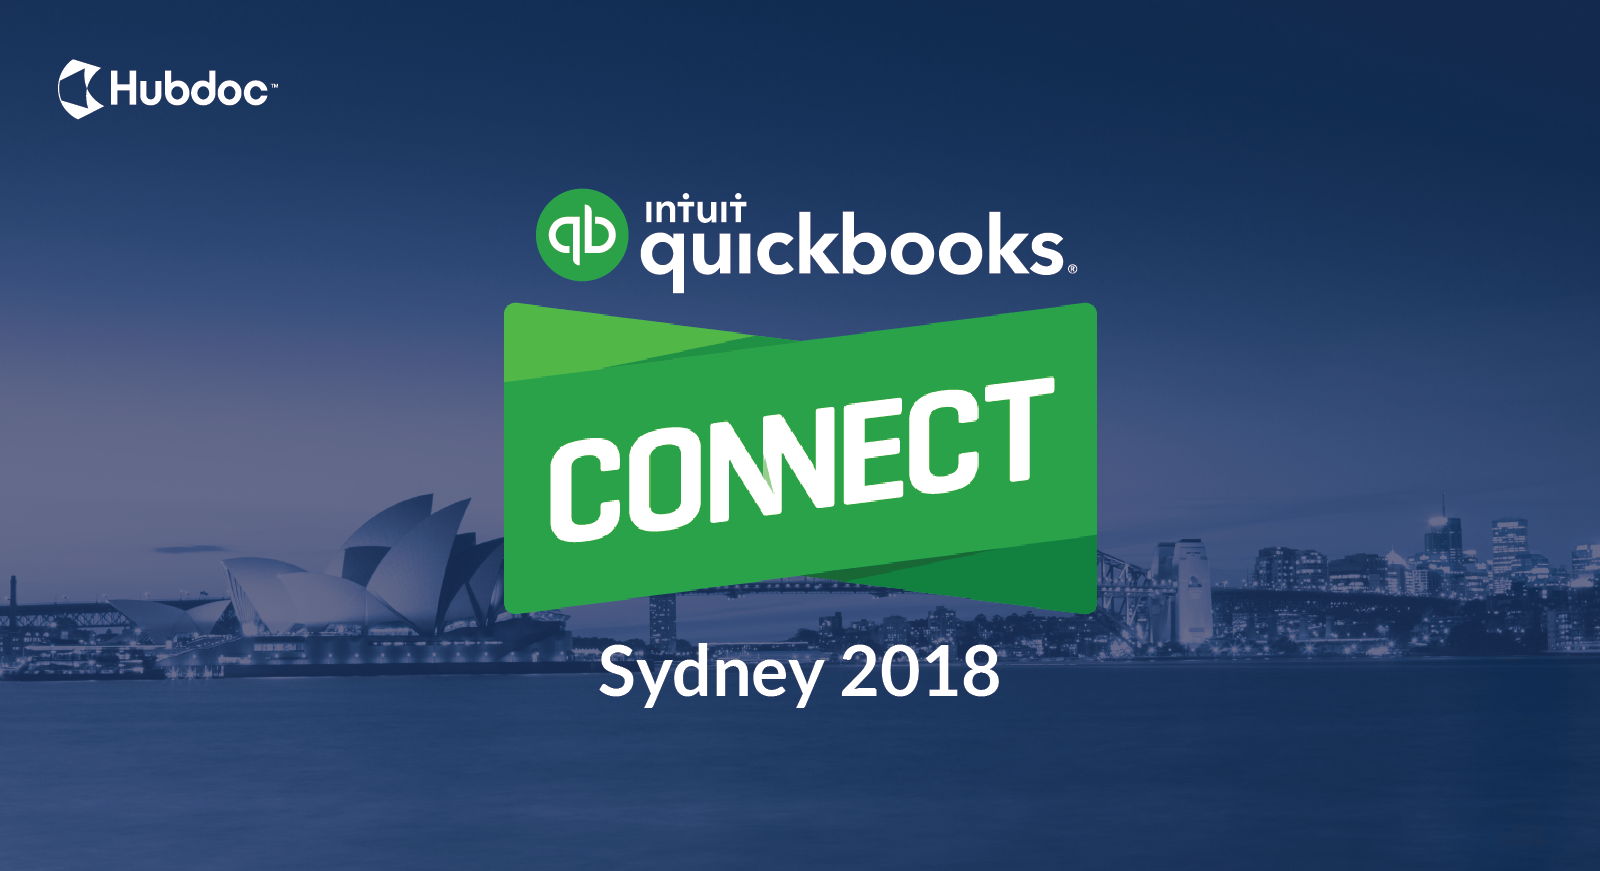 QuickBooks Connect Sydney 2018